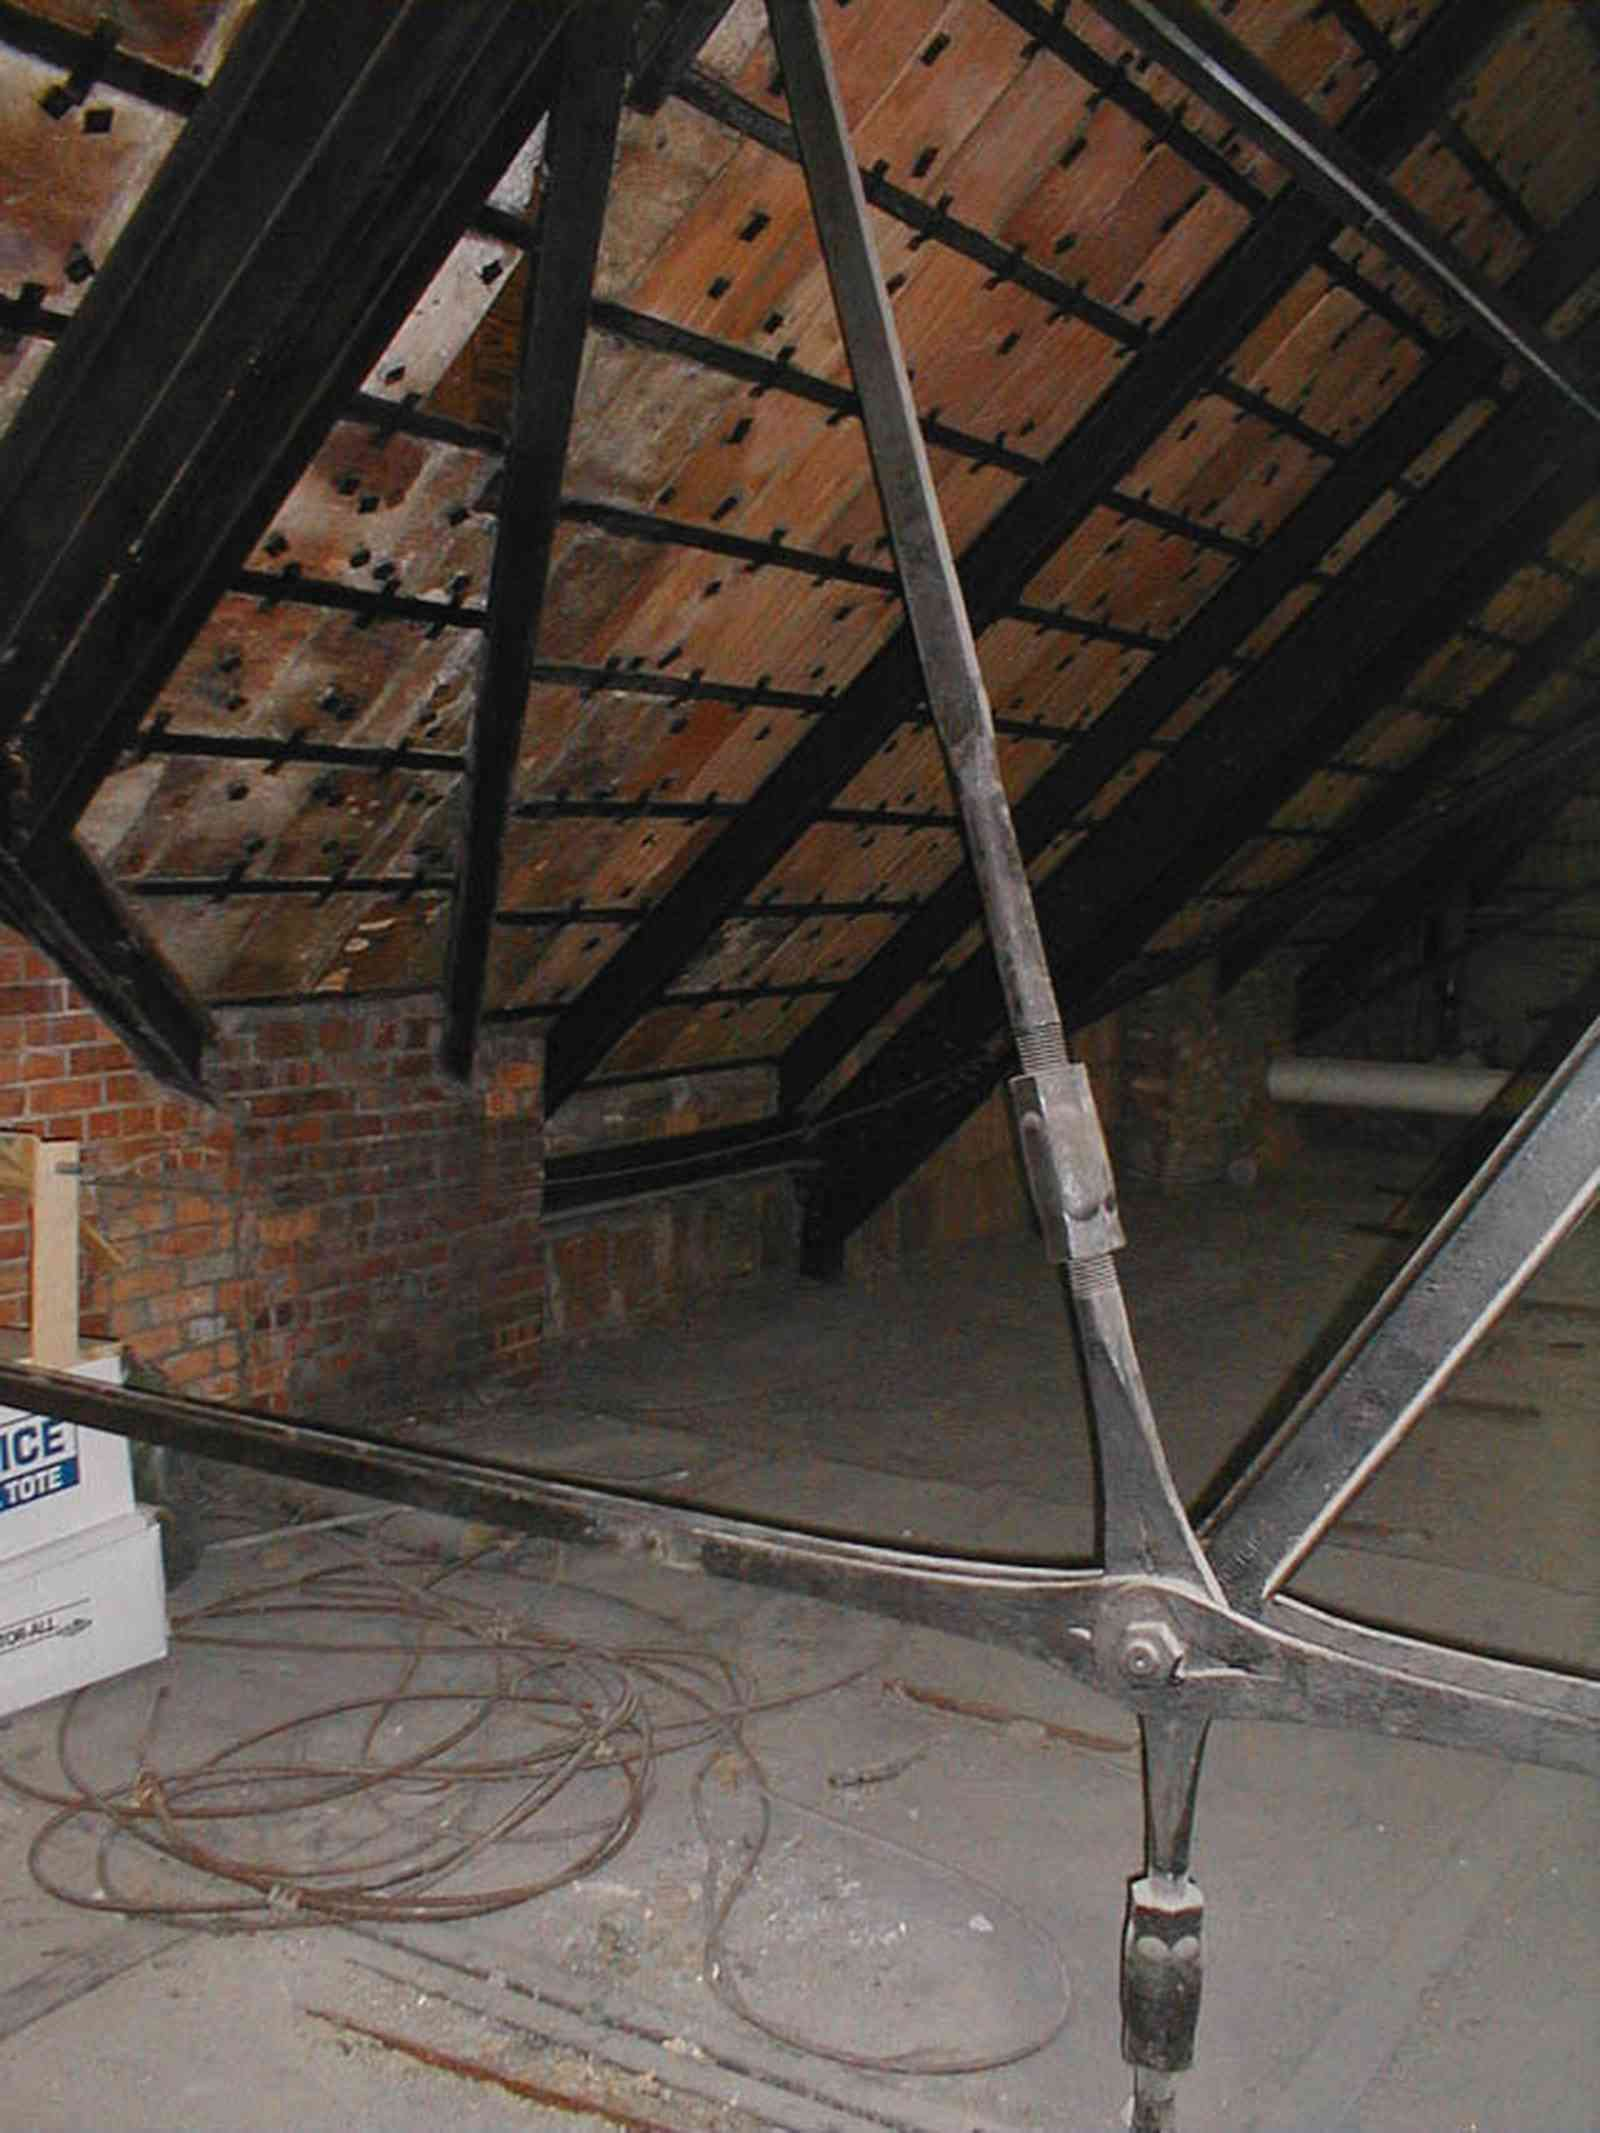 Pensacola:-Palafox-Historic-District:-Escambia-County-Courthouse_11.jpg:  attic, roof tiles, metal spring tension braces, brick walls